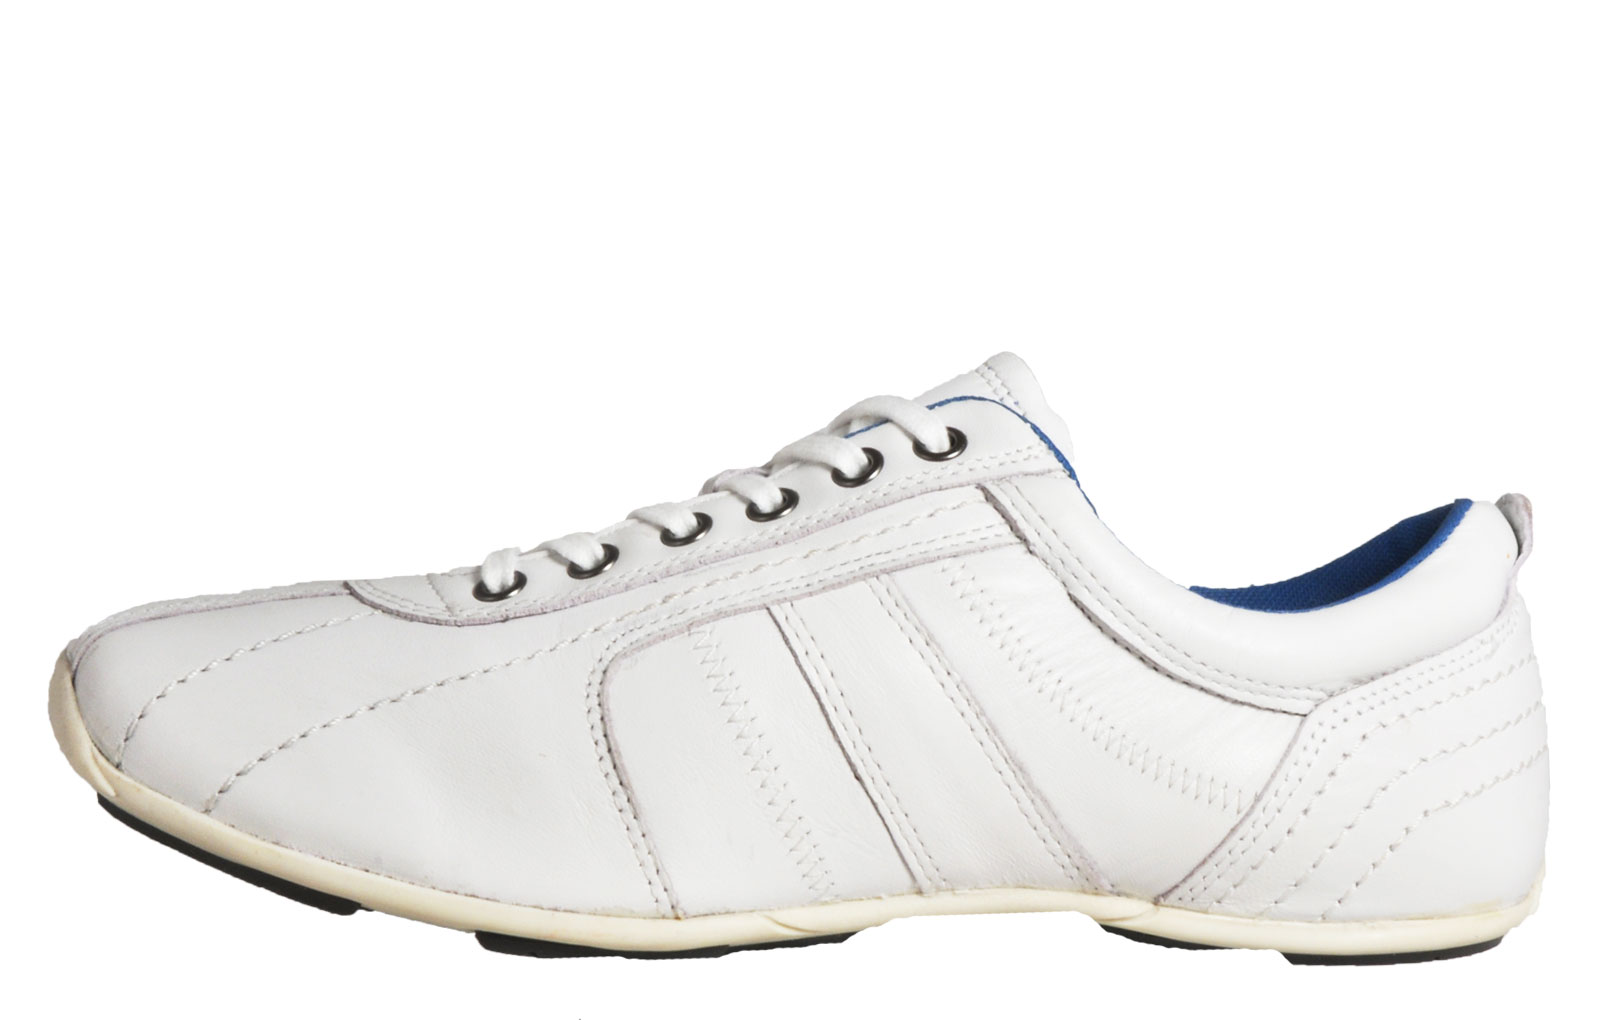 Cheap Price Buy Discount Barneys Leather Trainers Outlet Locations Cheap Price Professional Cheap Online dNW9IguH